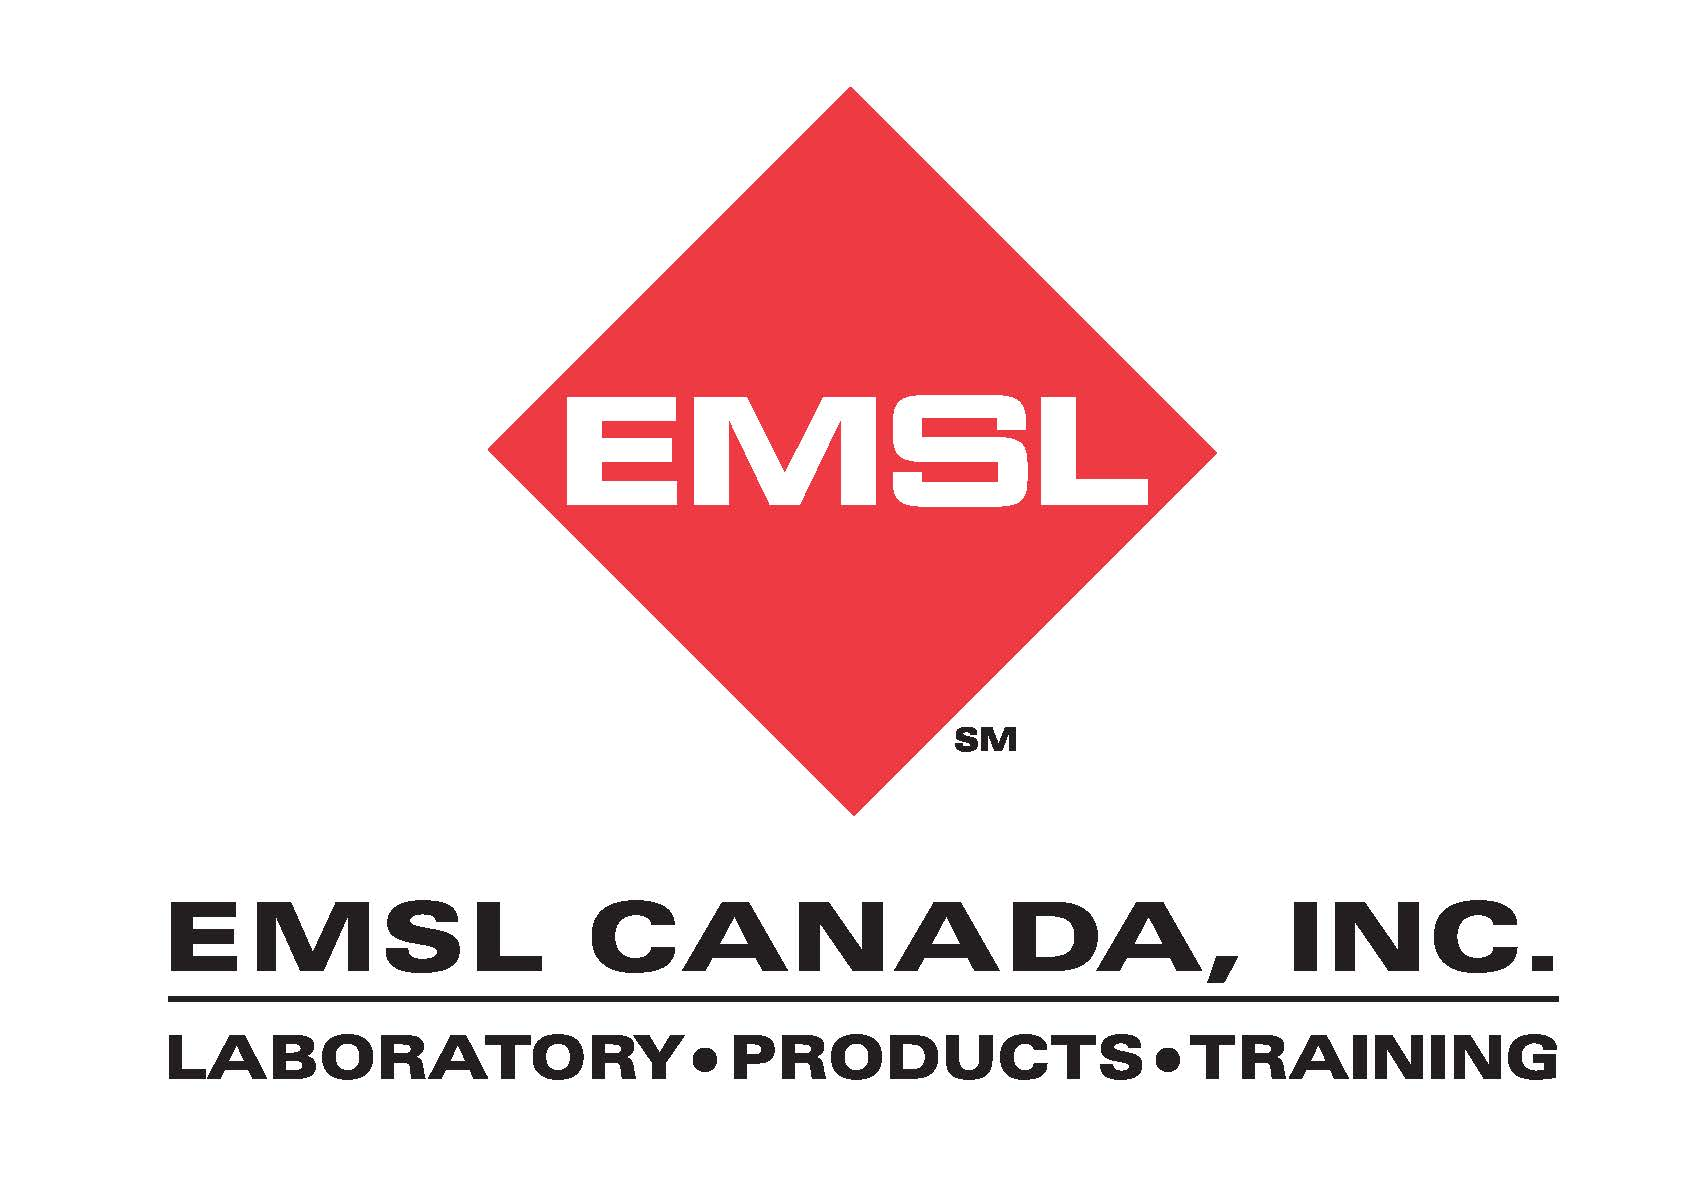 Ottawa Asbestos Testing Laboratory Offers NIOSH 582 Equivalency